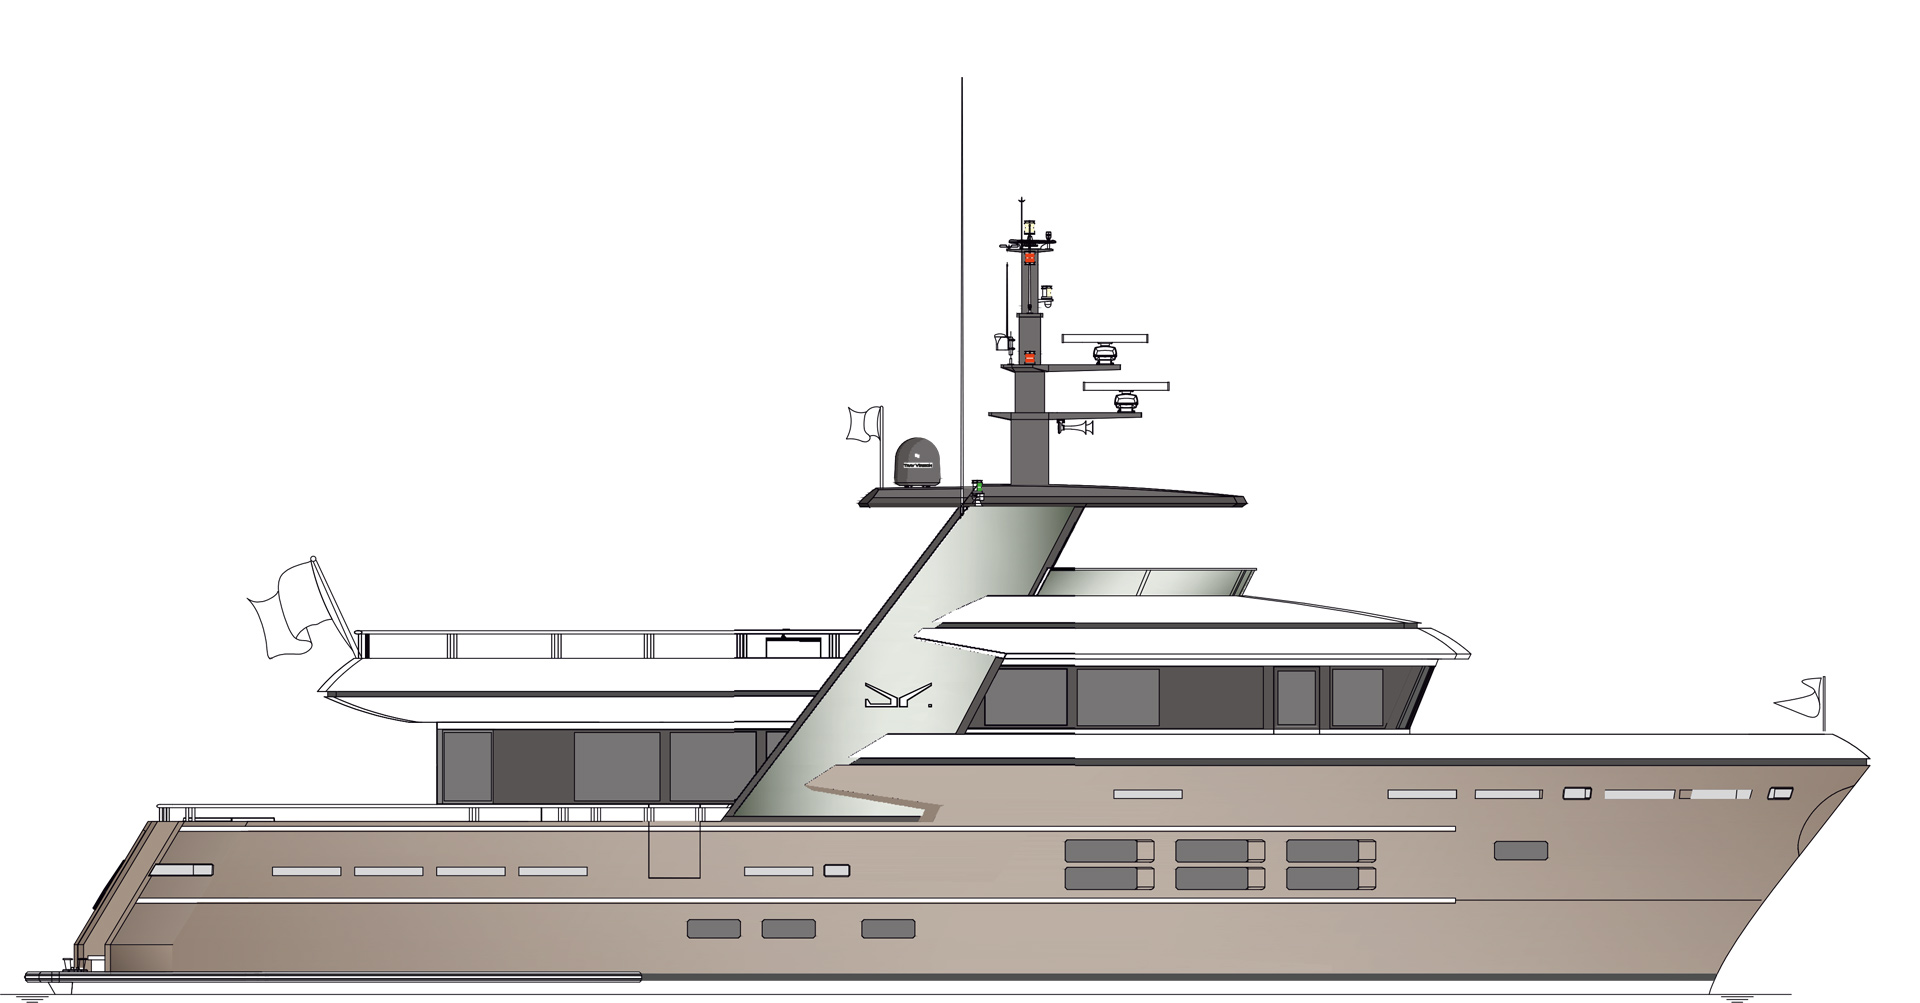 Construction and building process of Bandido Yachts -  - Drettmann Yachts